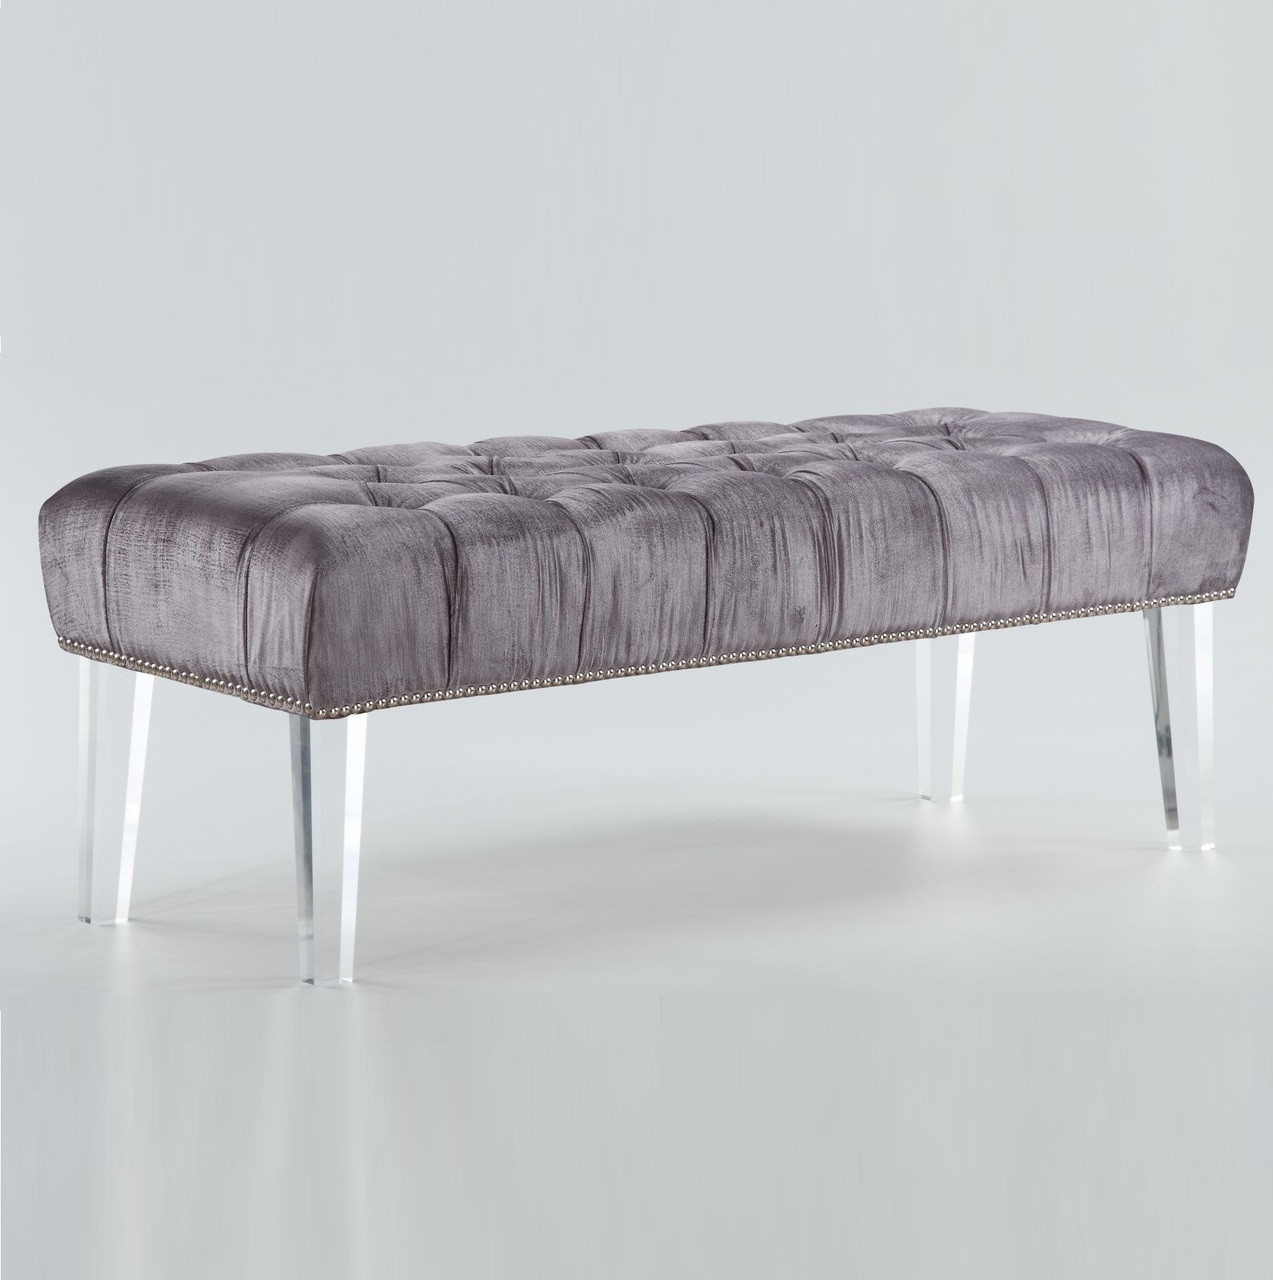 Stella Grey Velvet Tufted Acrylic Bed End Bench : stool at end of bed - islam-shia.org